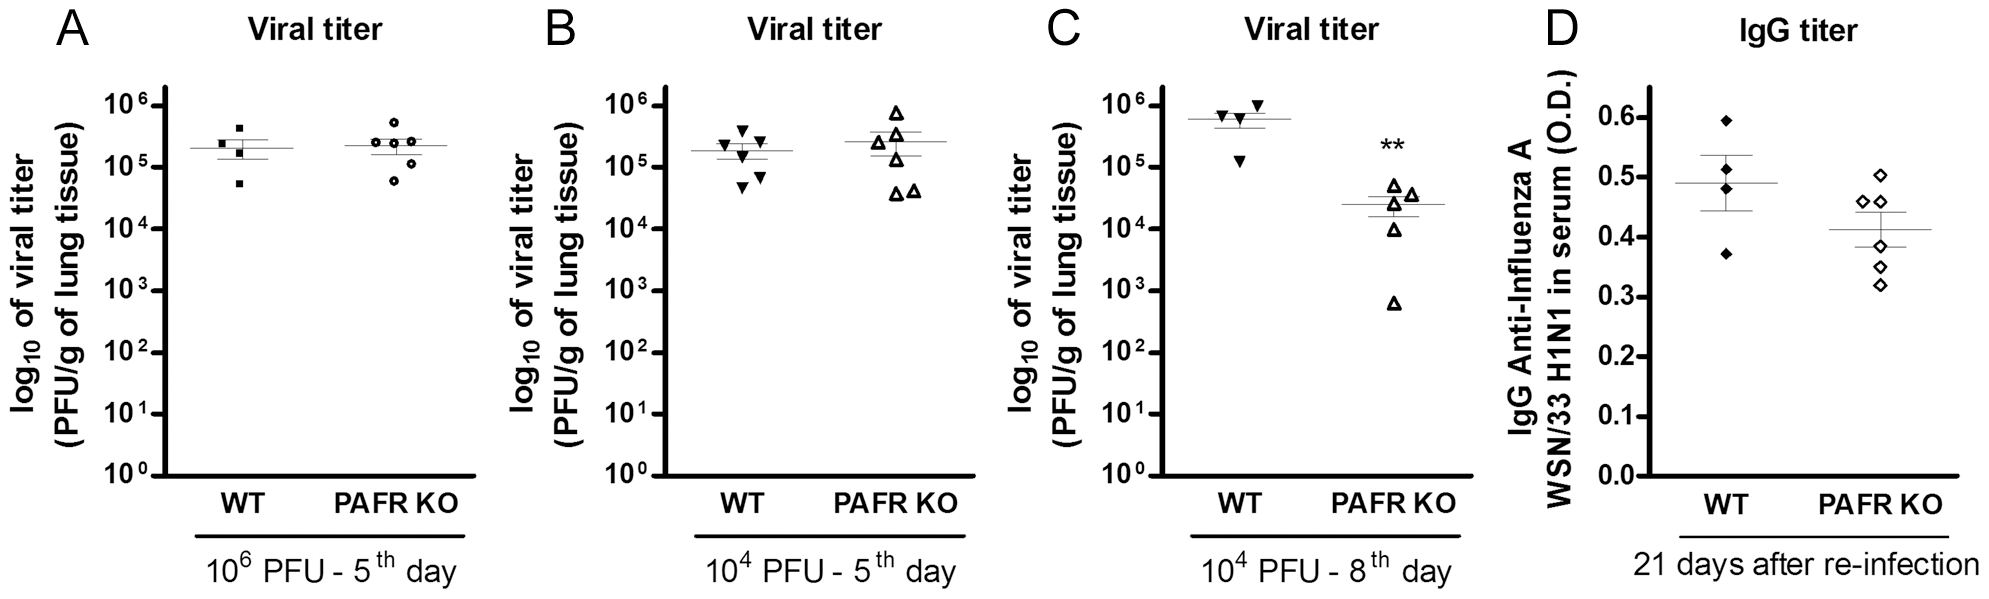 Viral load and specific antibodies after Influenza A/WSN/33 H1N1 infections of WT and PAFR-deficient mice.